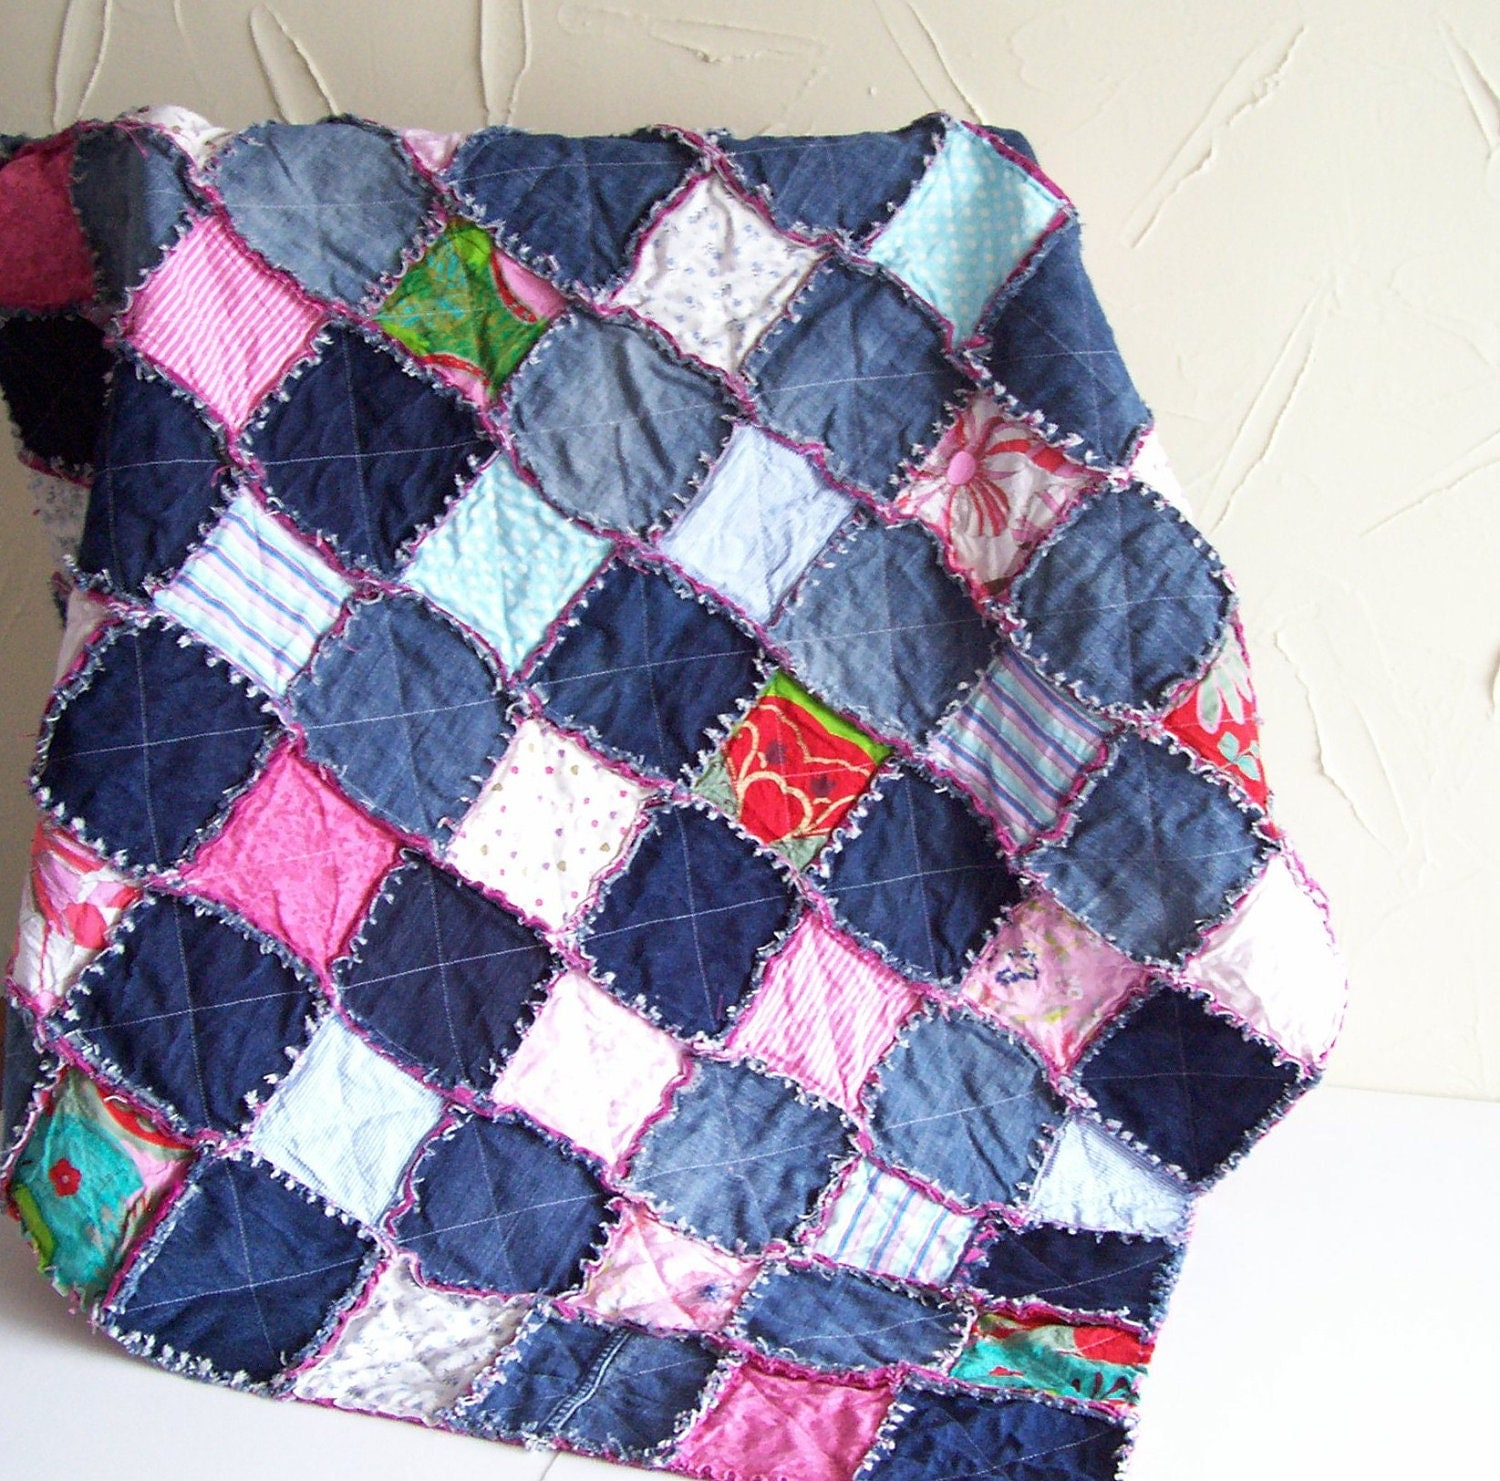 Denim rag quilt tutorial PDF pattern - picnic blanket - recycled ... : rug quilt - Adamdwight.com